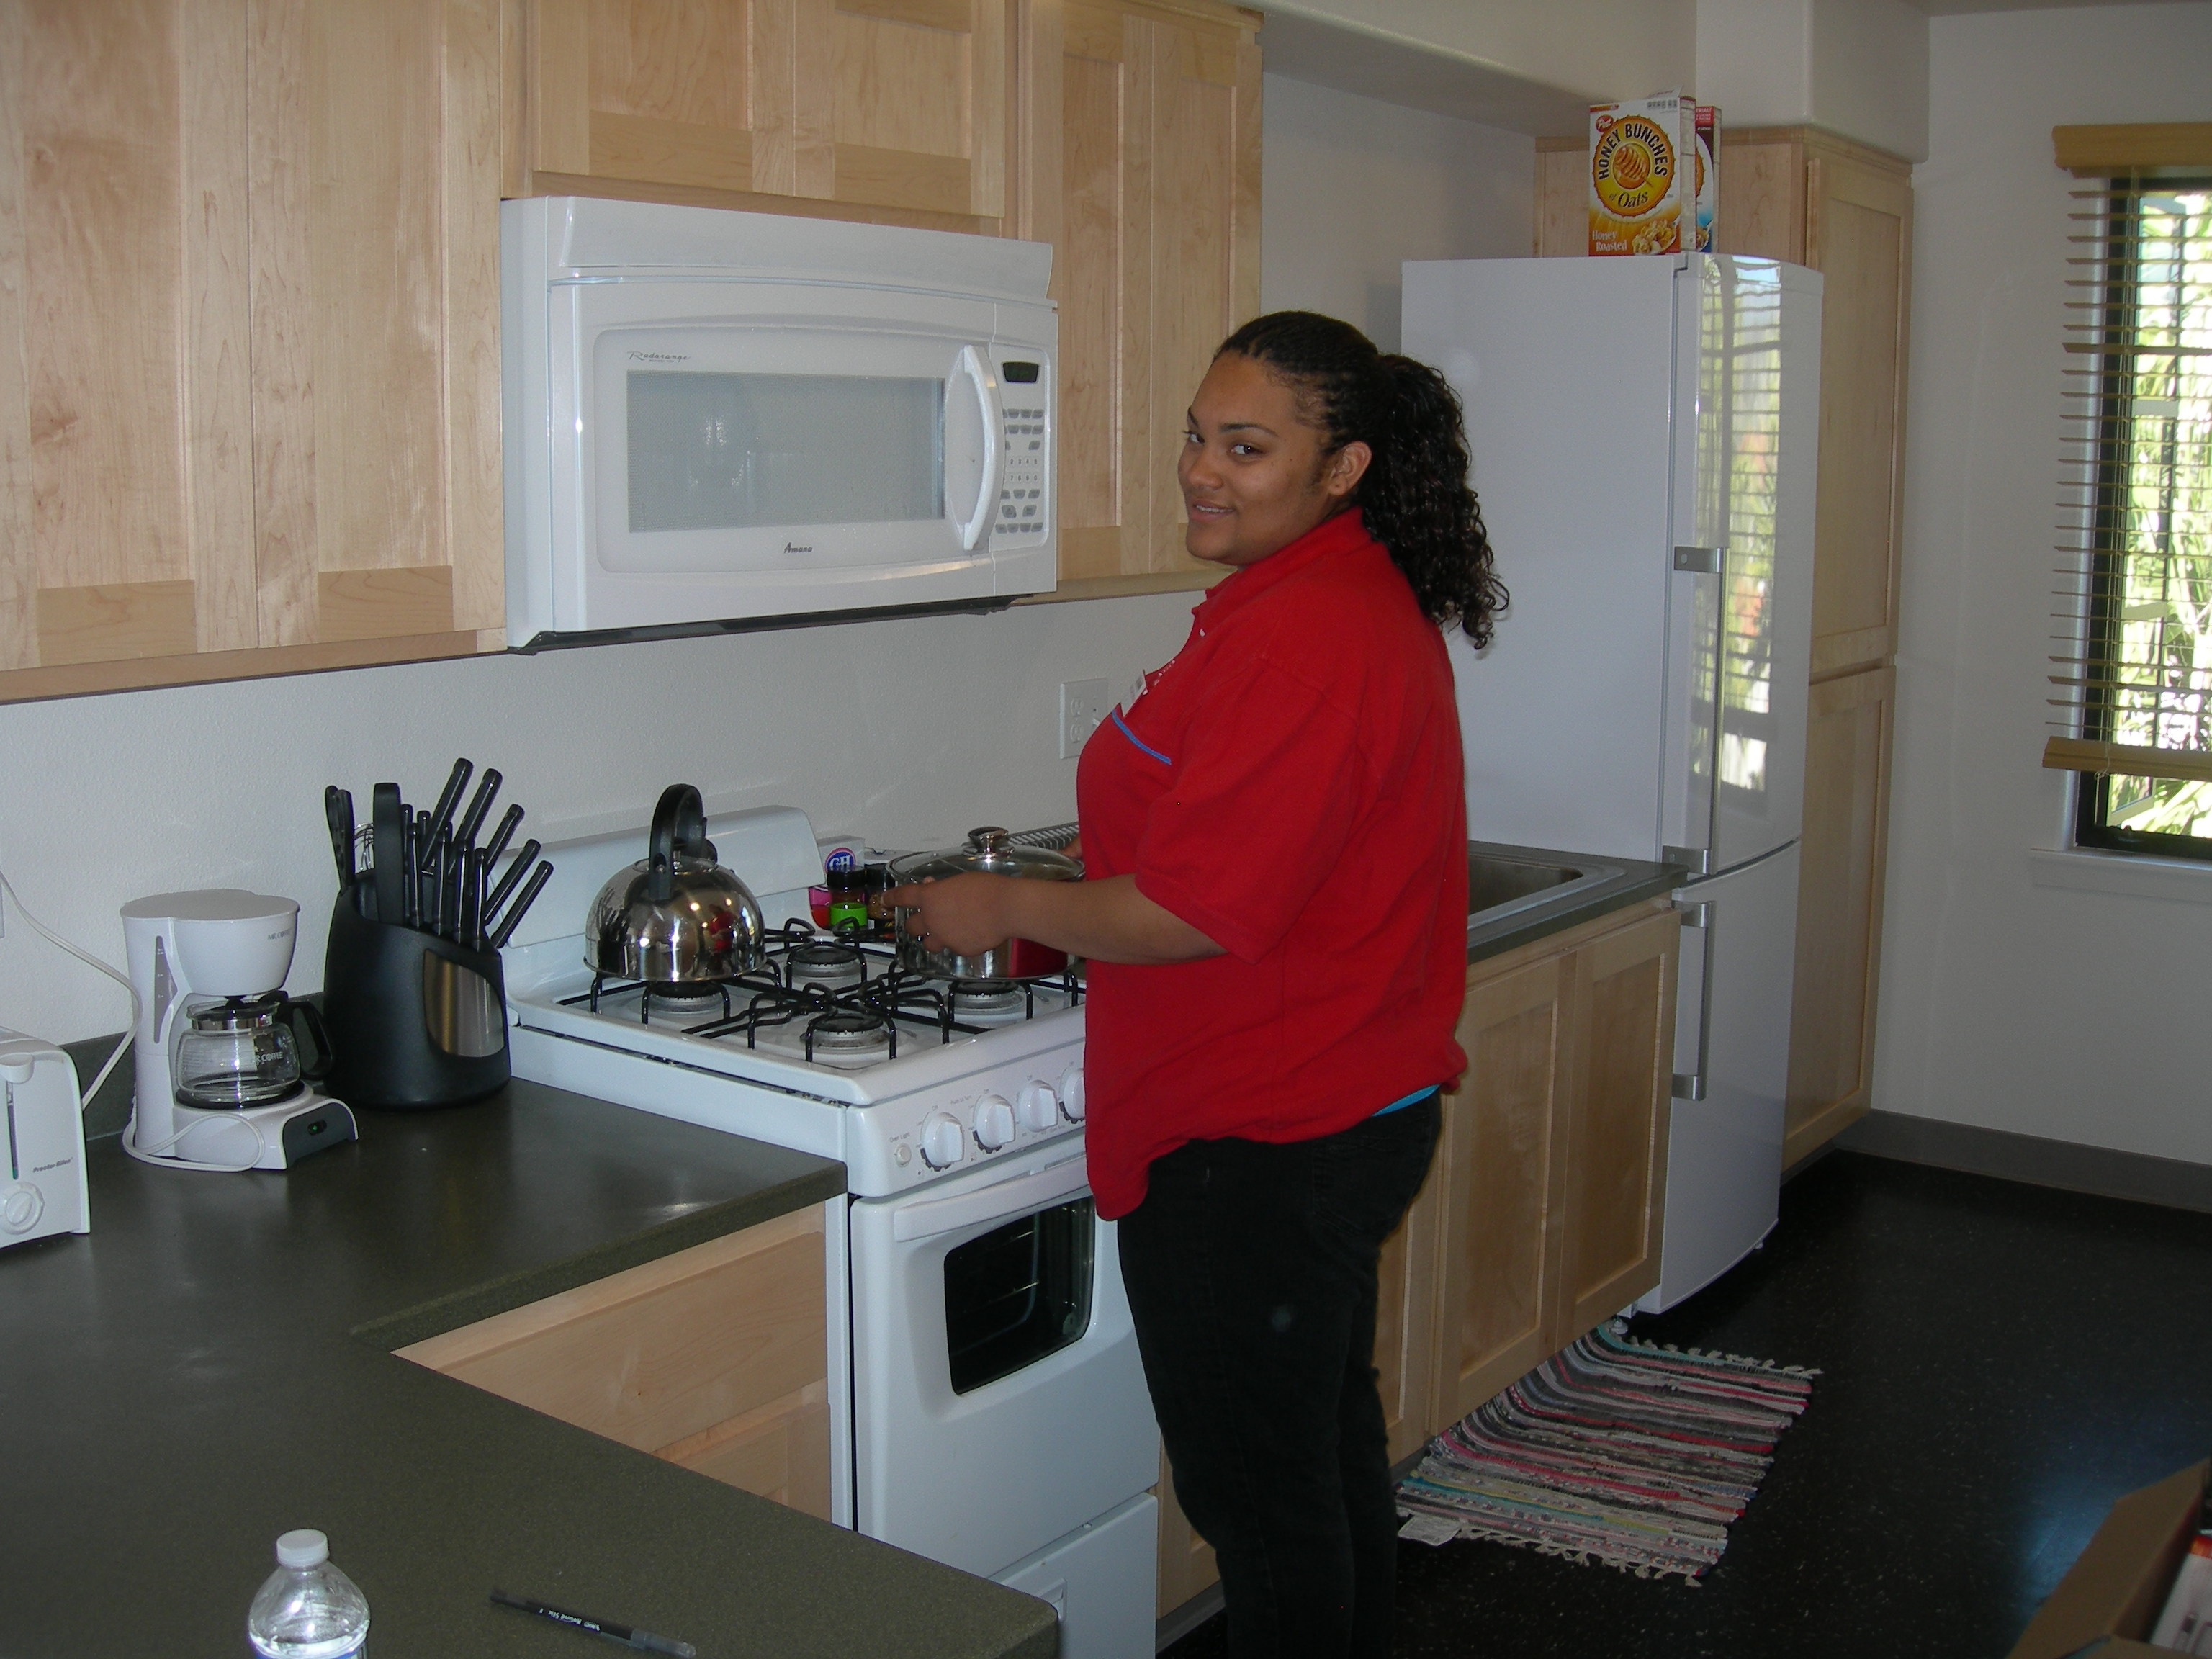 2010 Channel Islands YFS girl in red sweater in kitchenette